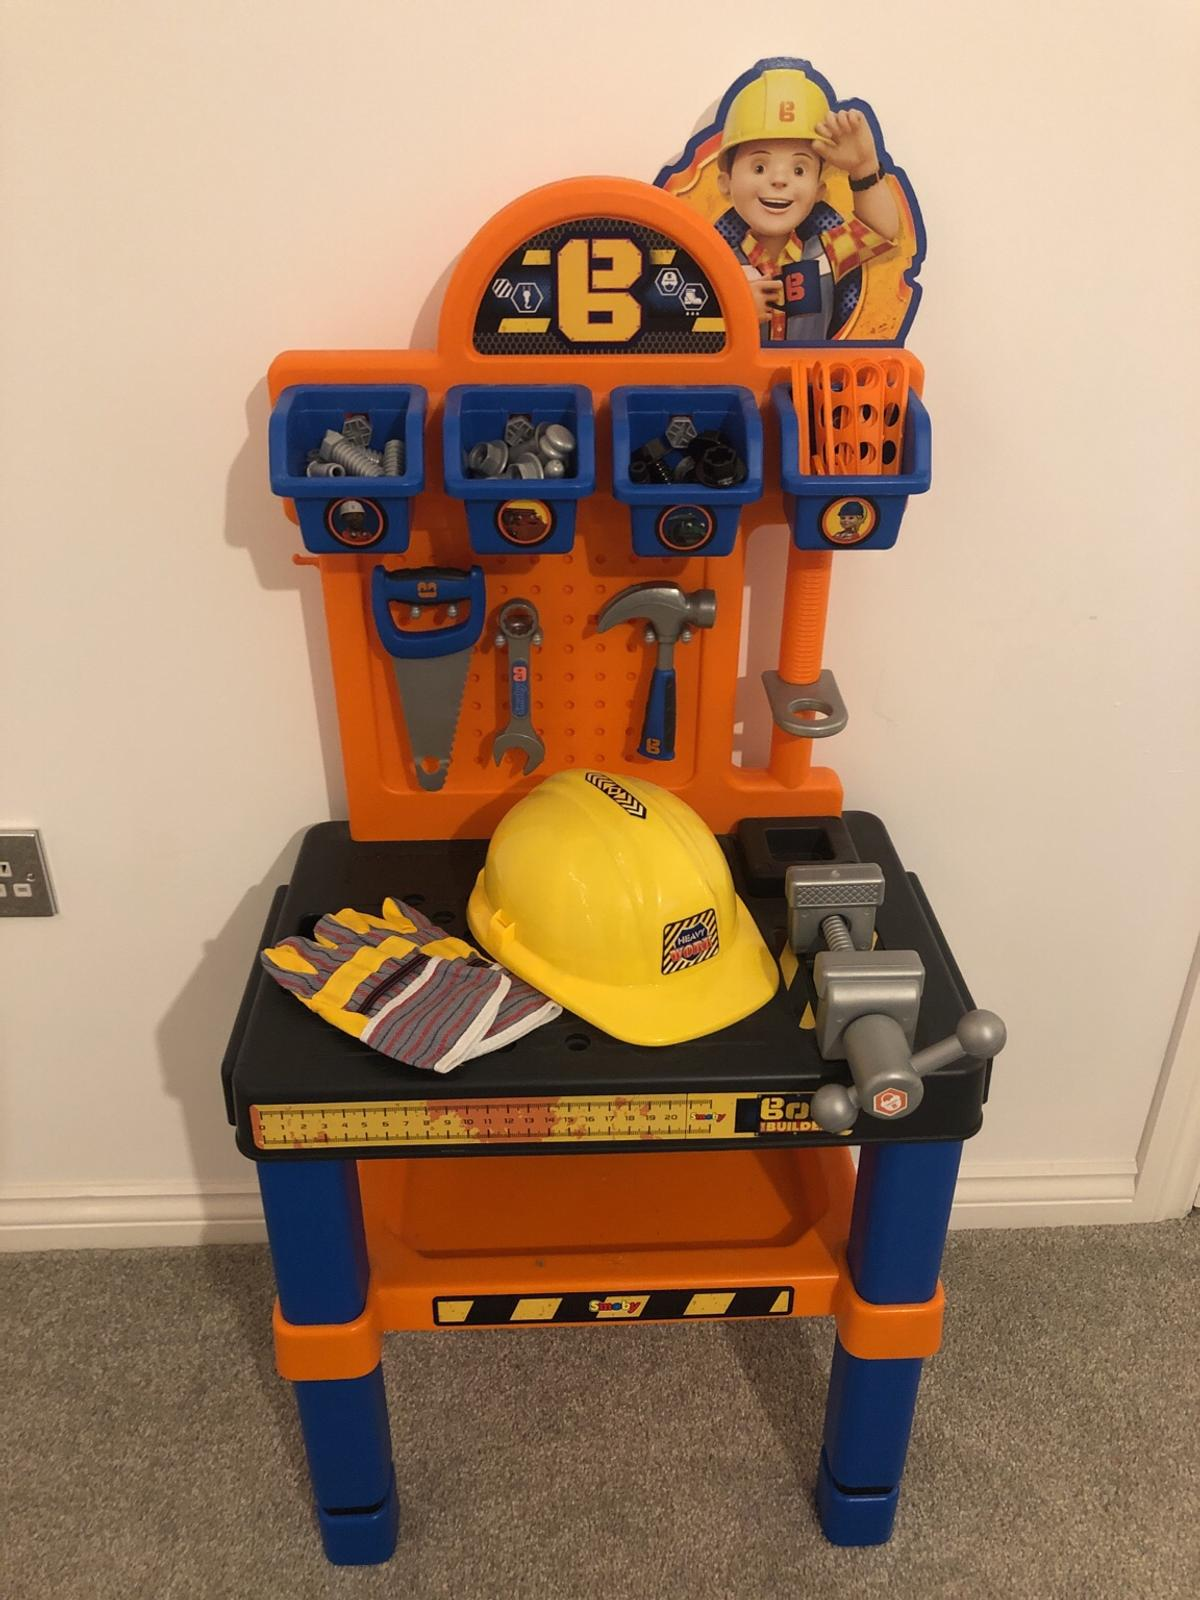 Phenomenal Smoby Bob The Builder Workbench Tools In Barnsley For Gmtry Best Dining Table And Chair Ideas Images Gmtryco